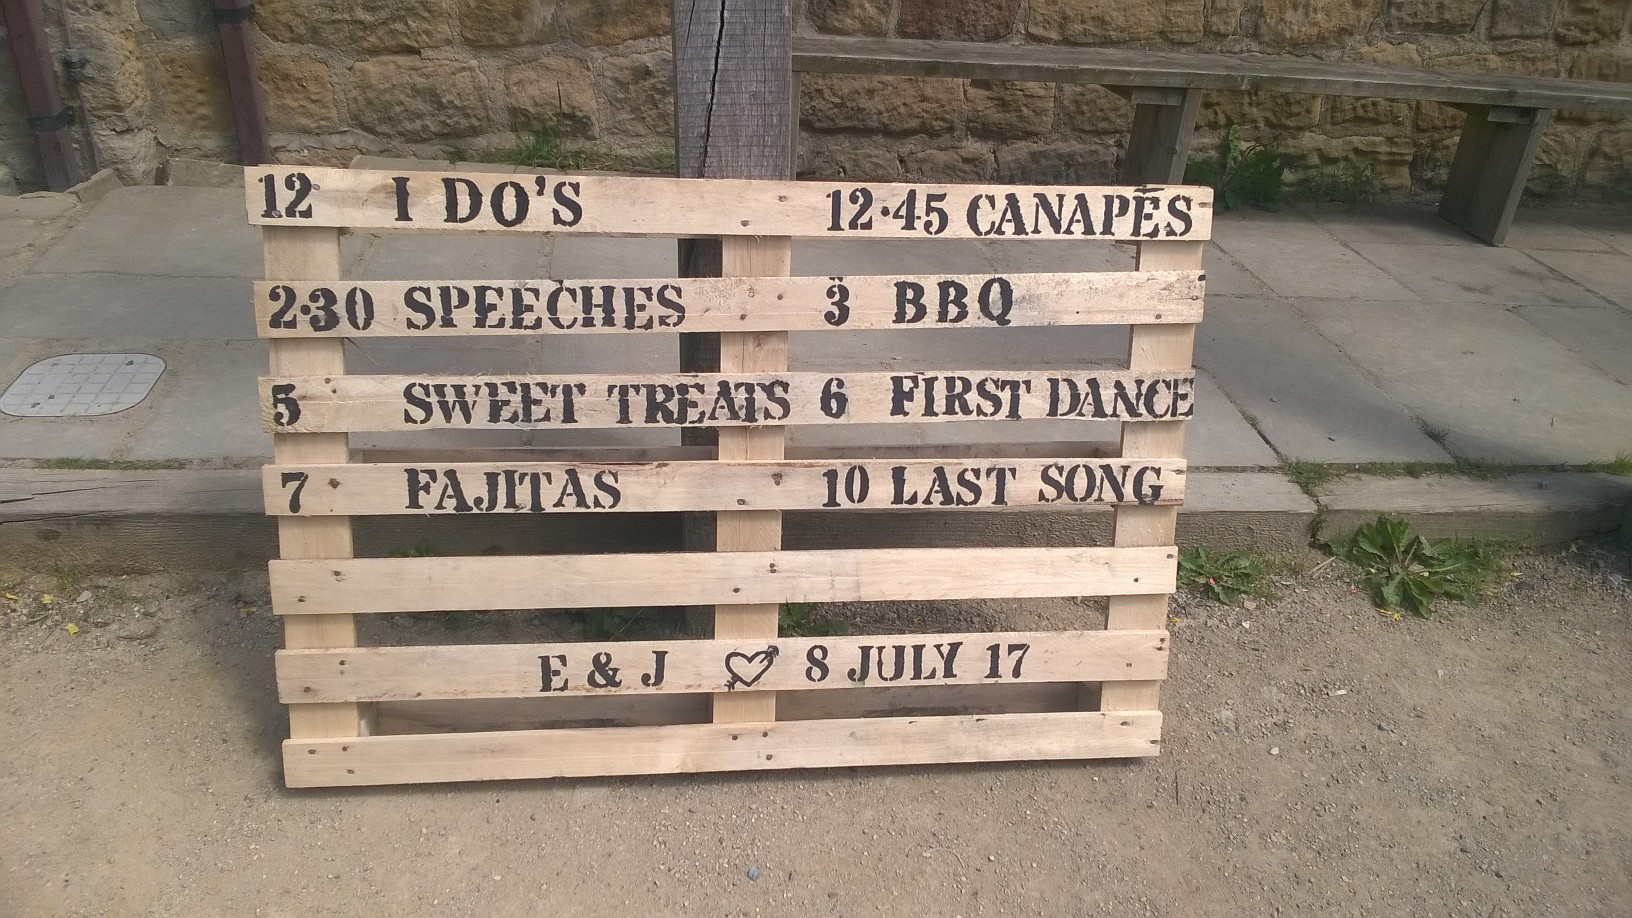 Barbecue Catering Yorkshire